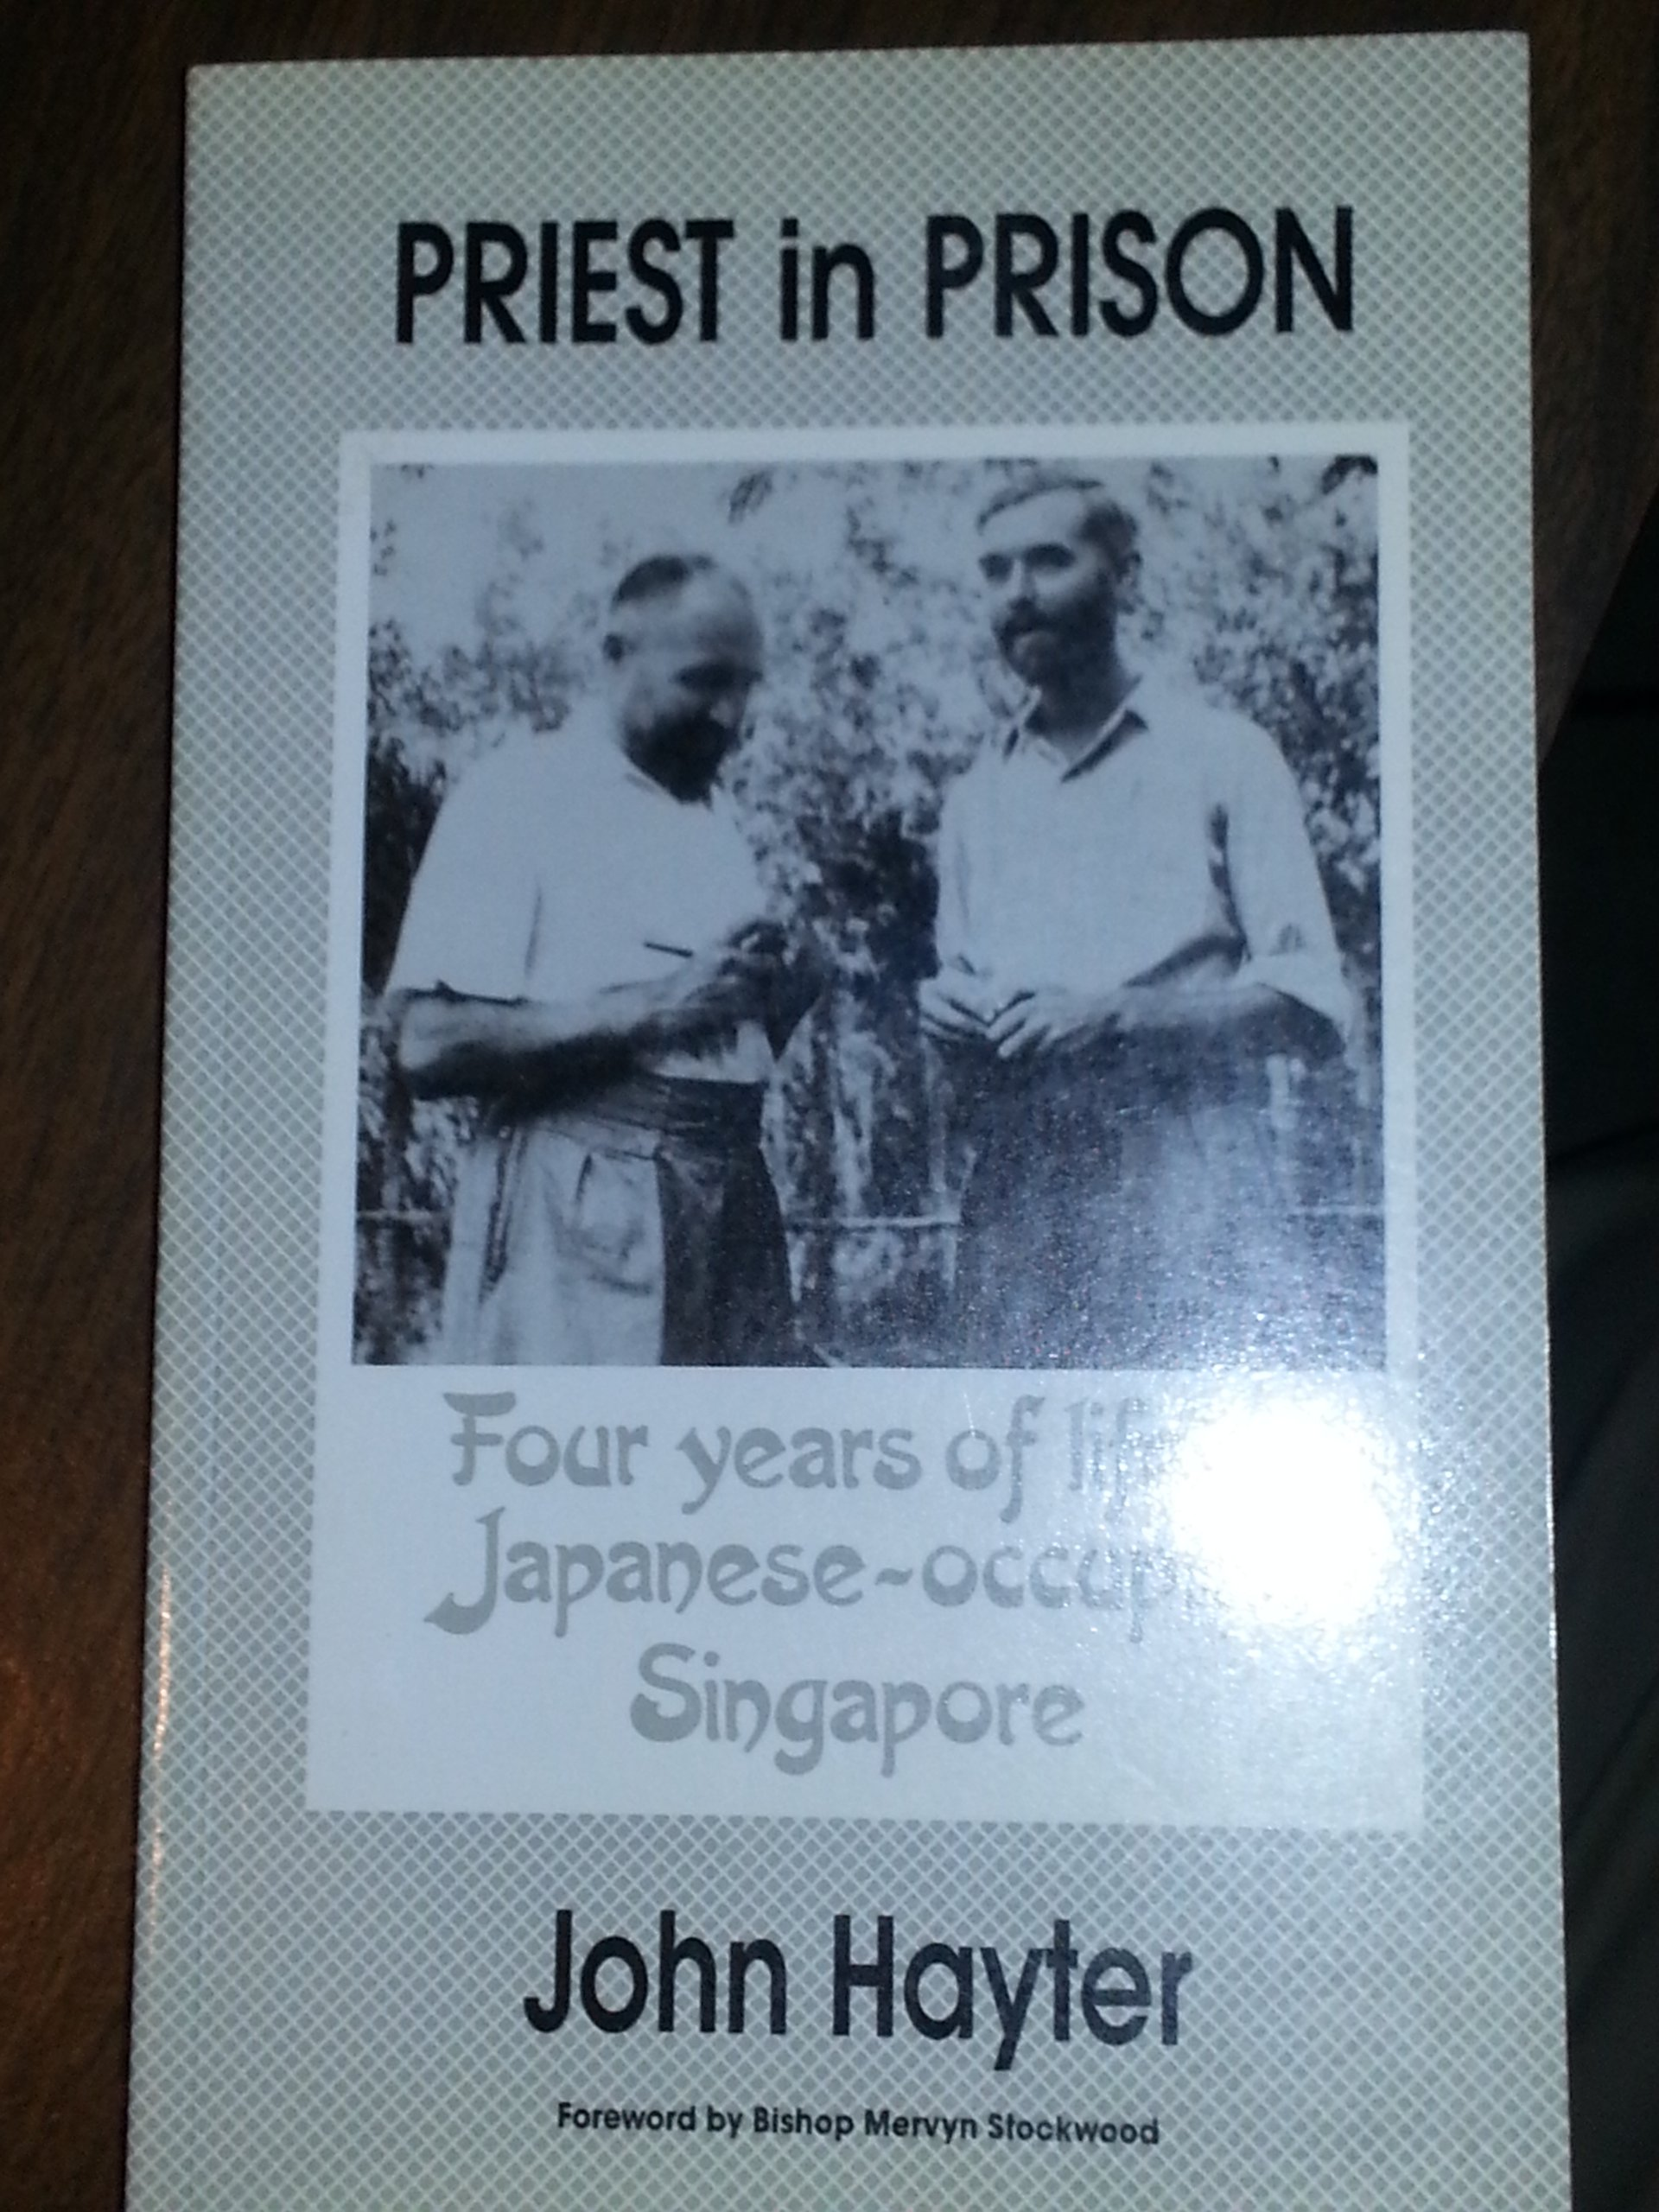 priest-in-prison-four-years-of-life-in-japanese-occupied-singapore-1941-45